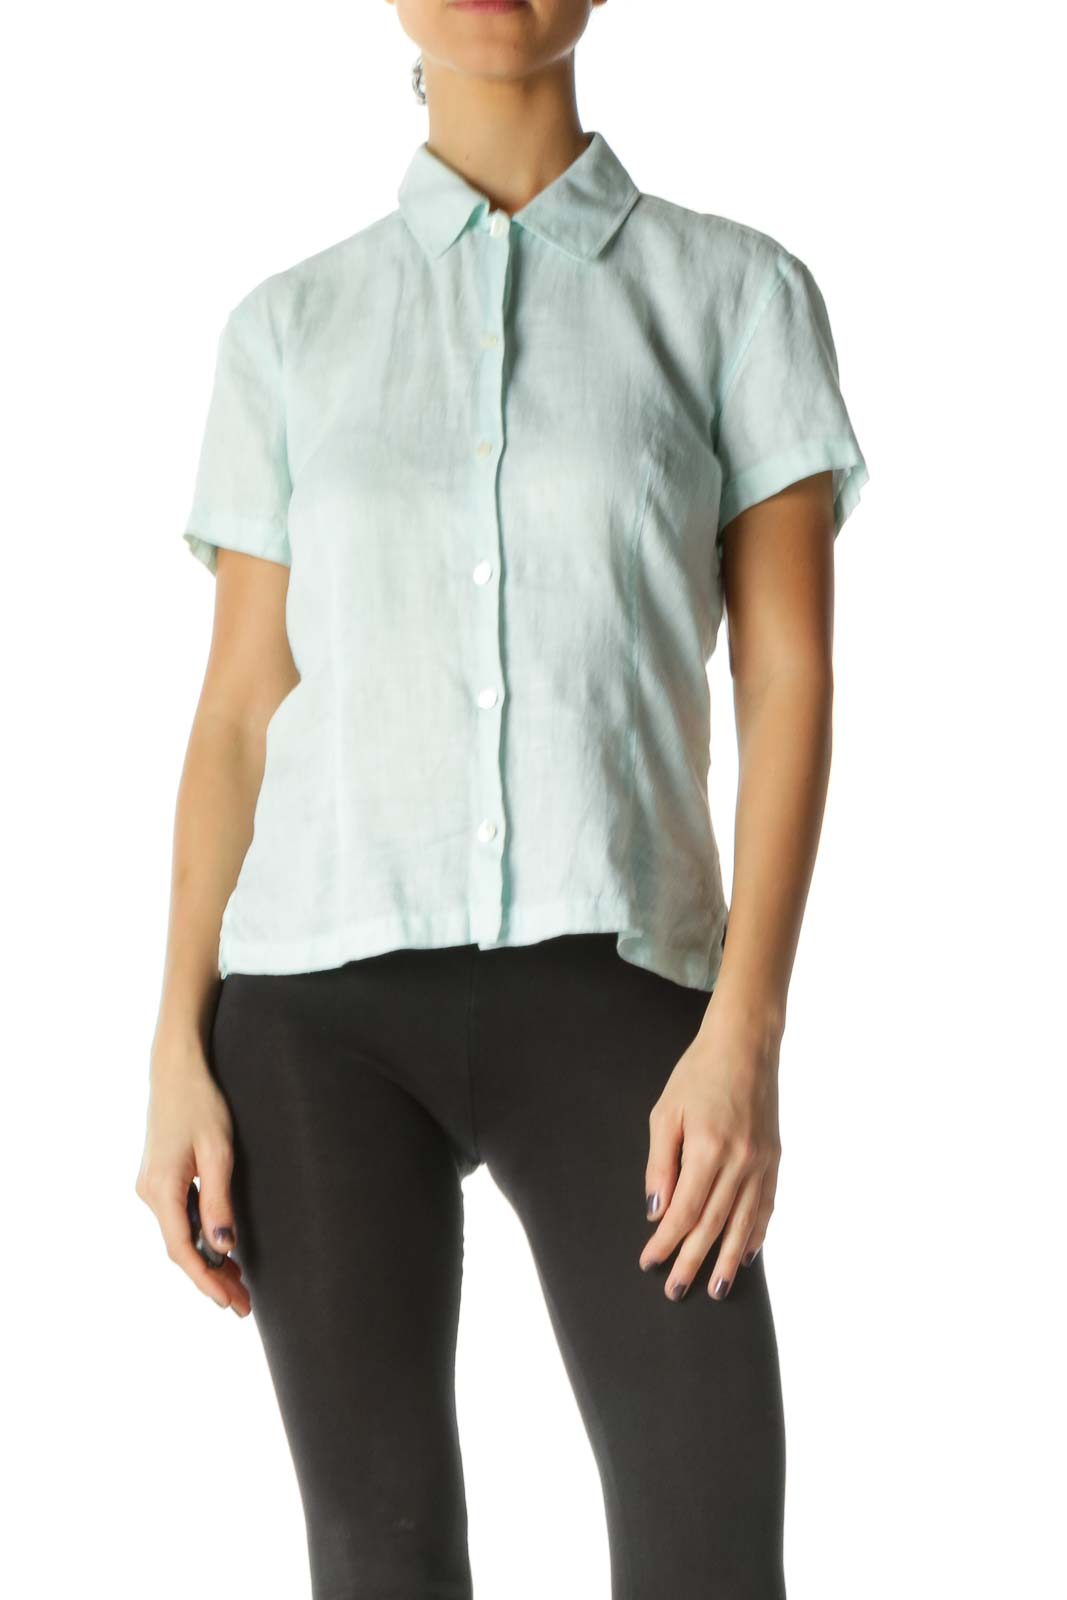 Green Solid Collared Shirt